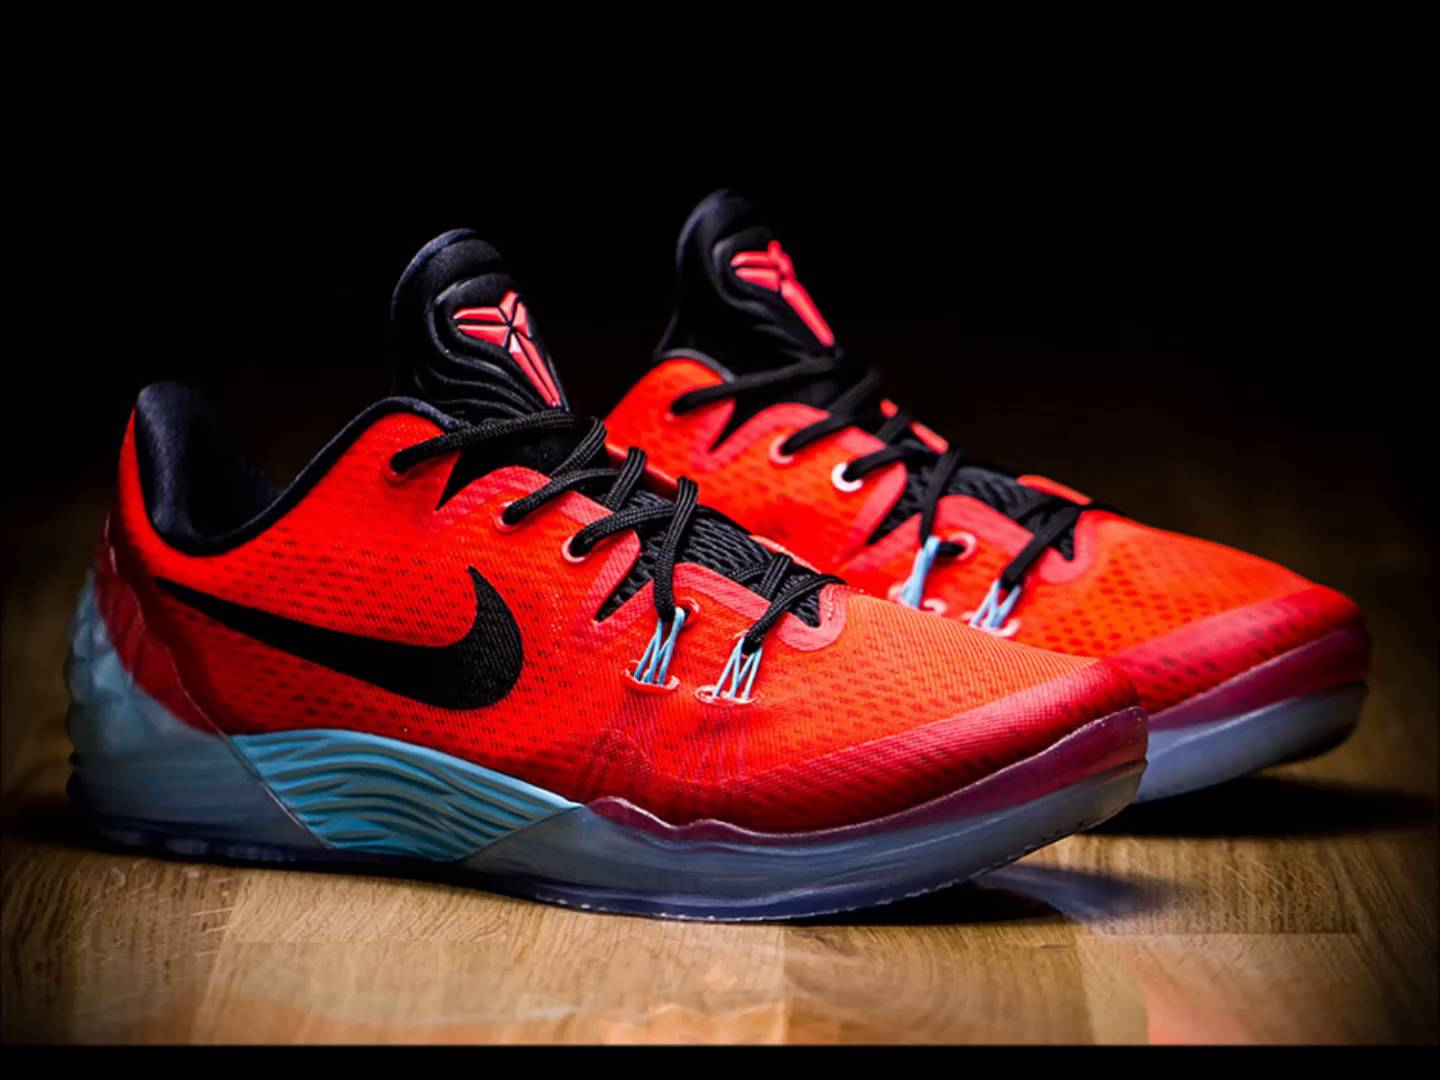 basketball sneakers top 10 basketball shoes of early 2016 - youtube bsmutli